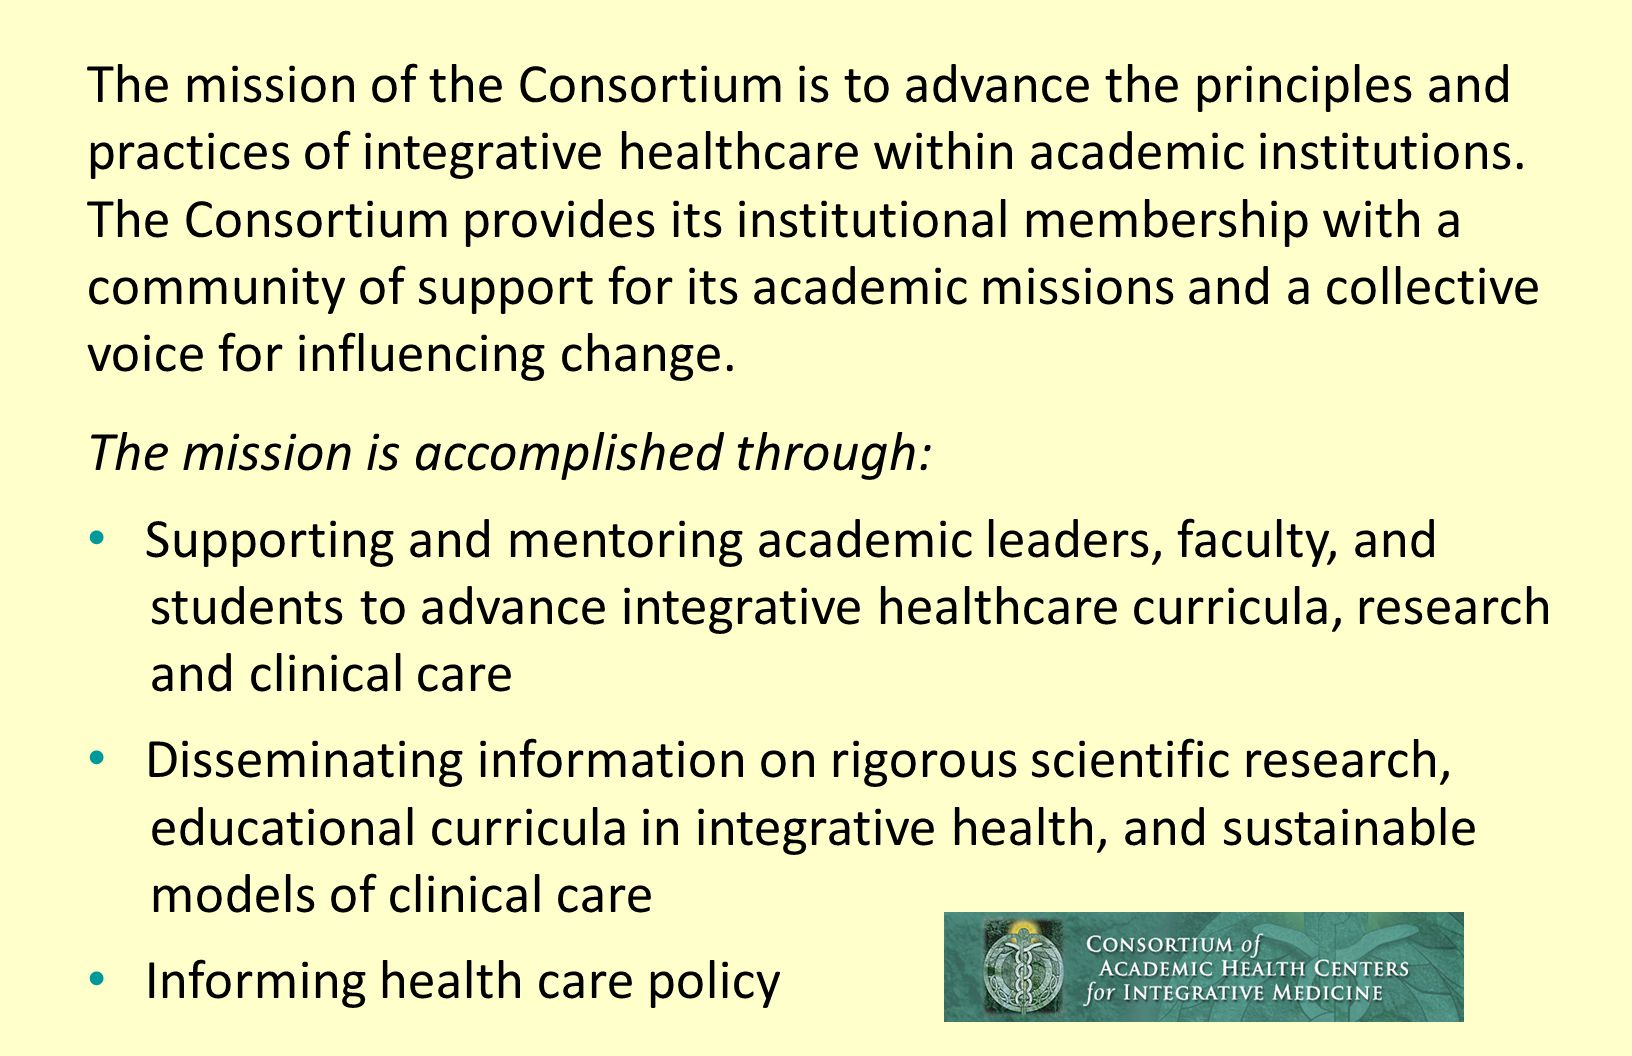 The mission of the Consortium is to advance the principles and practices of integrative healthcare within academic institutions.